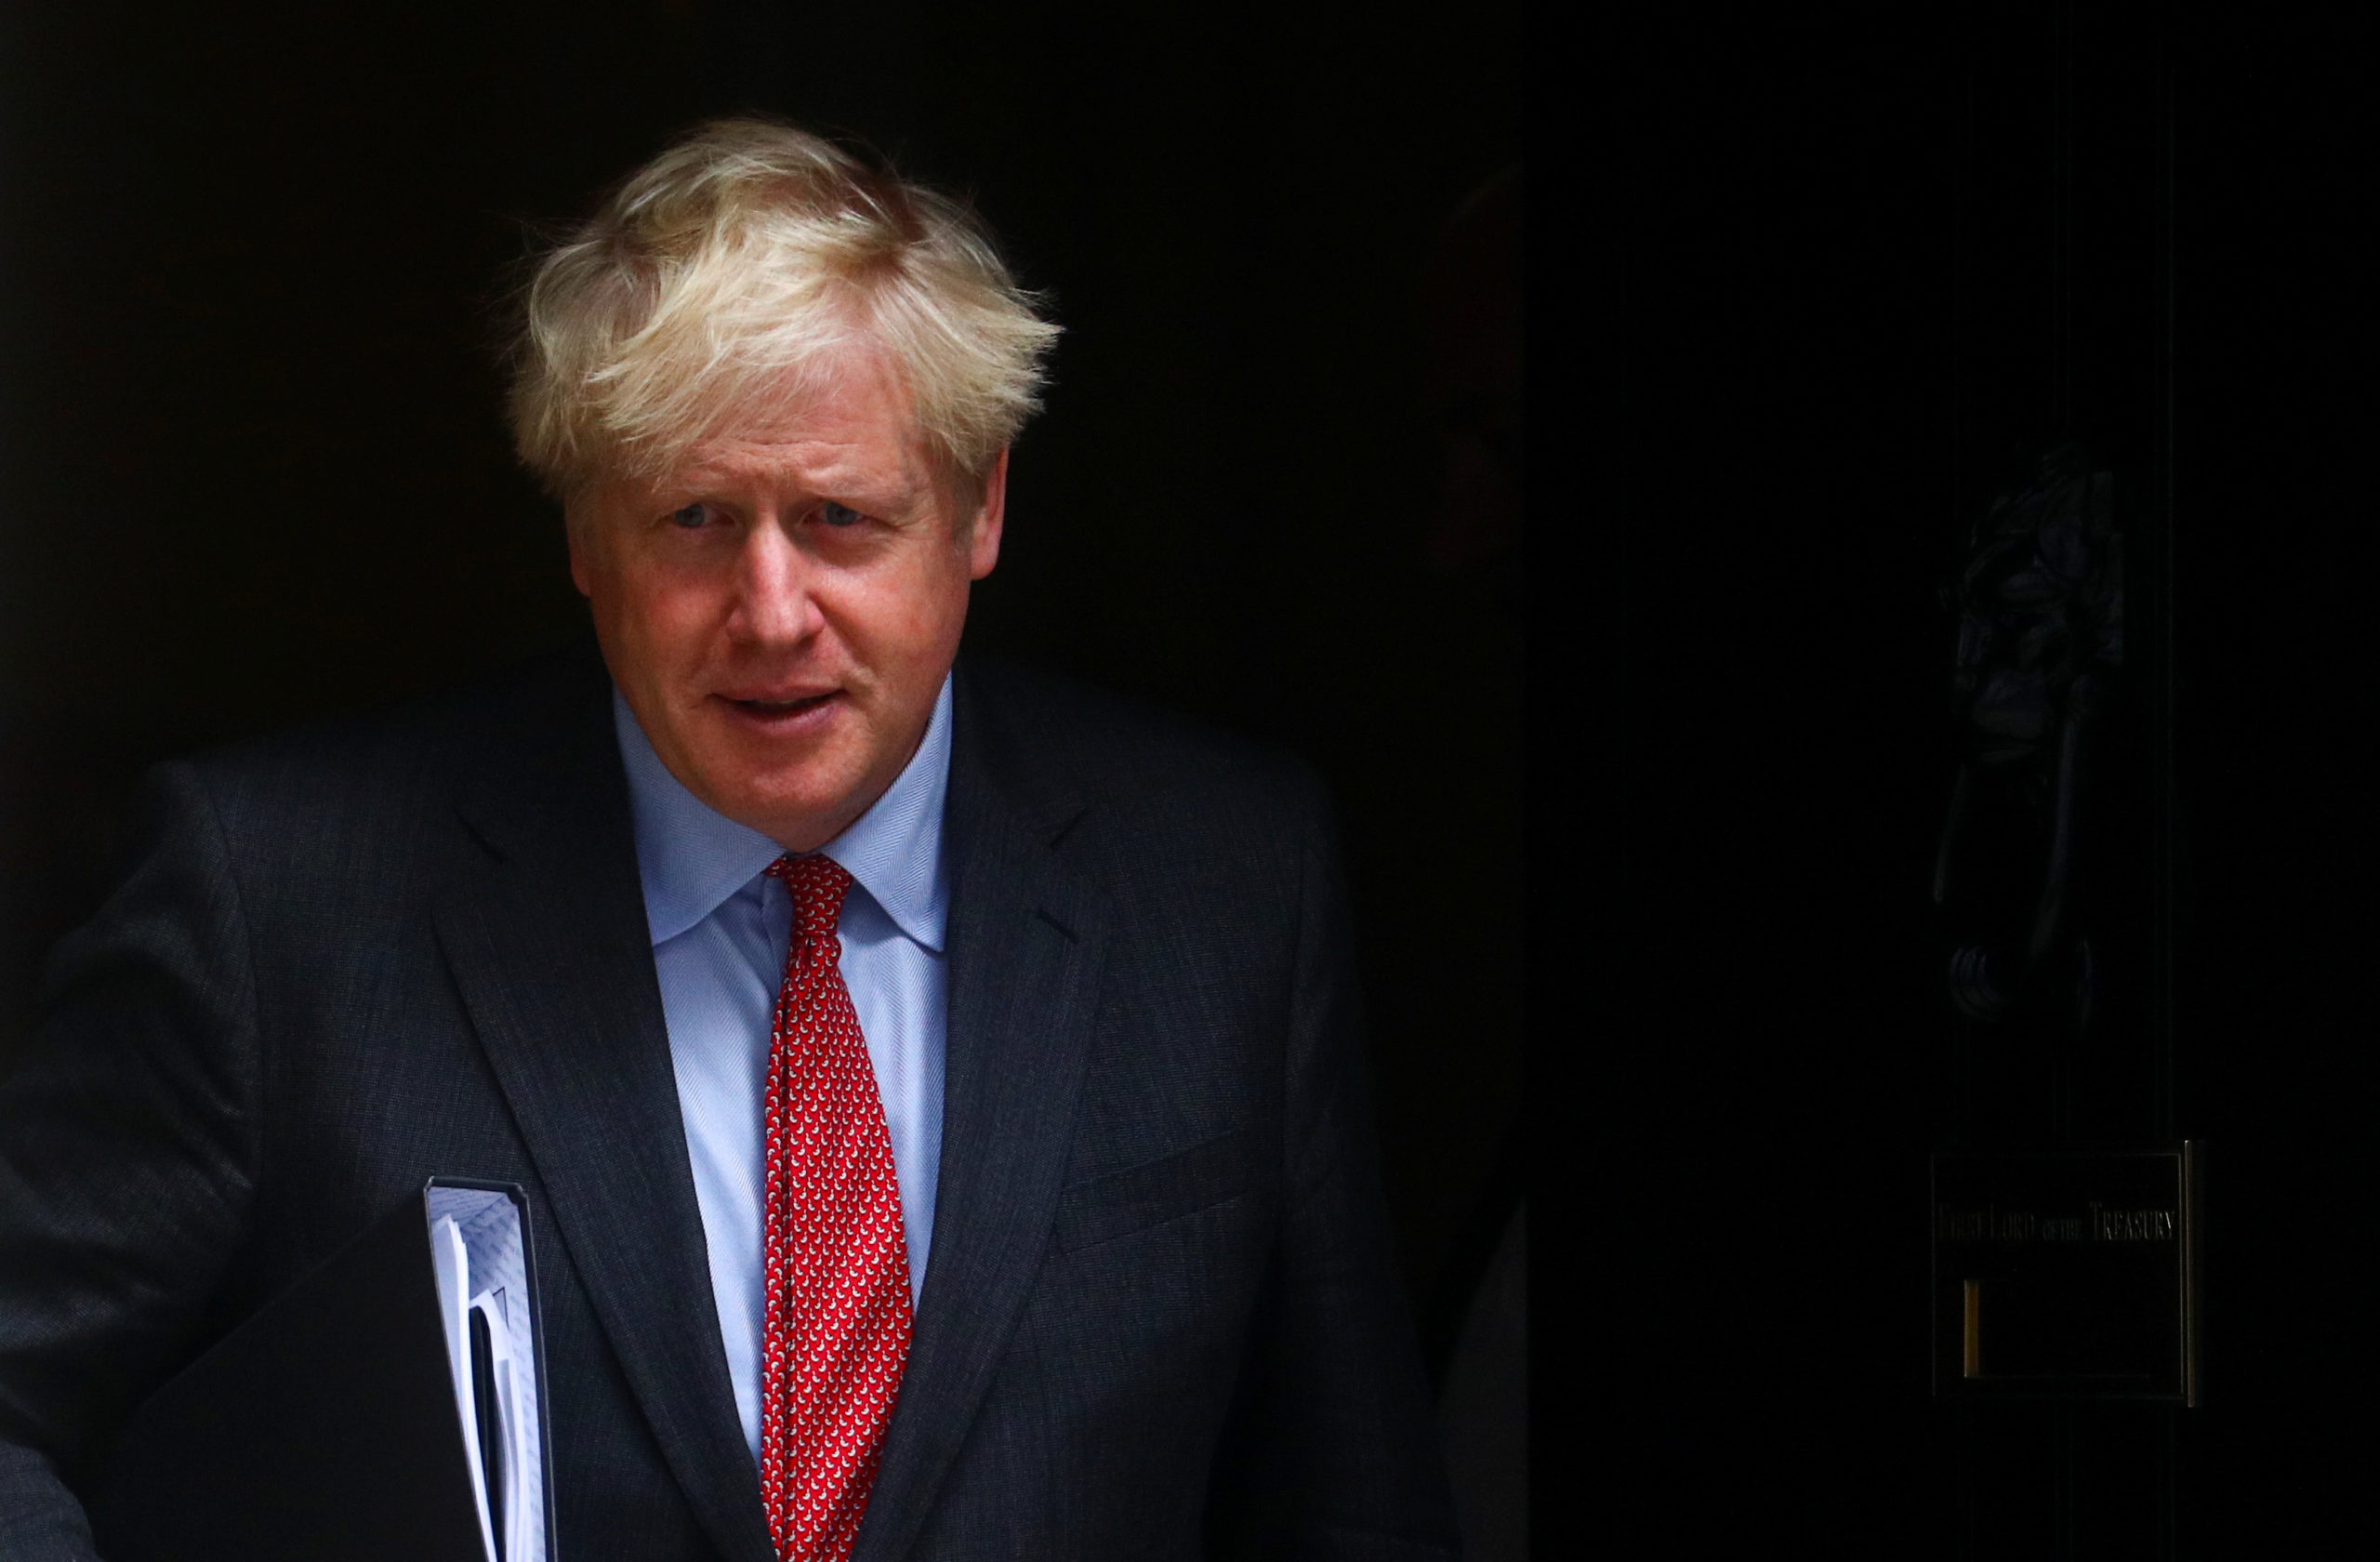 Coronavirus: Boris Johnson annonce six mois de restrictions